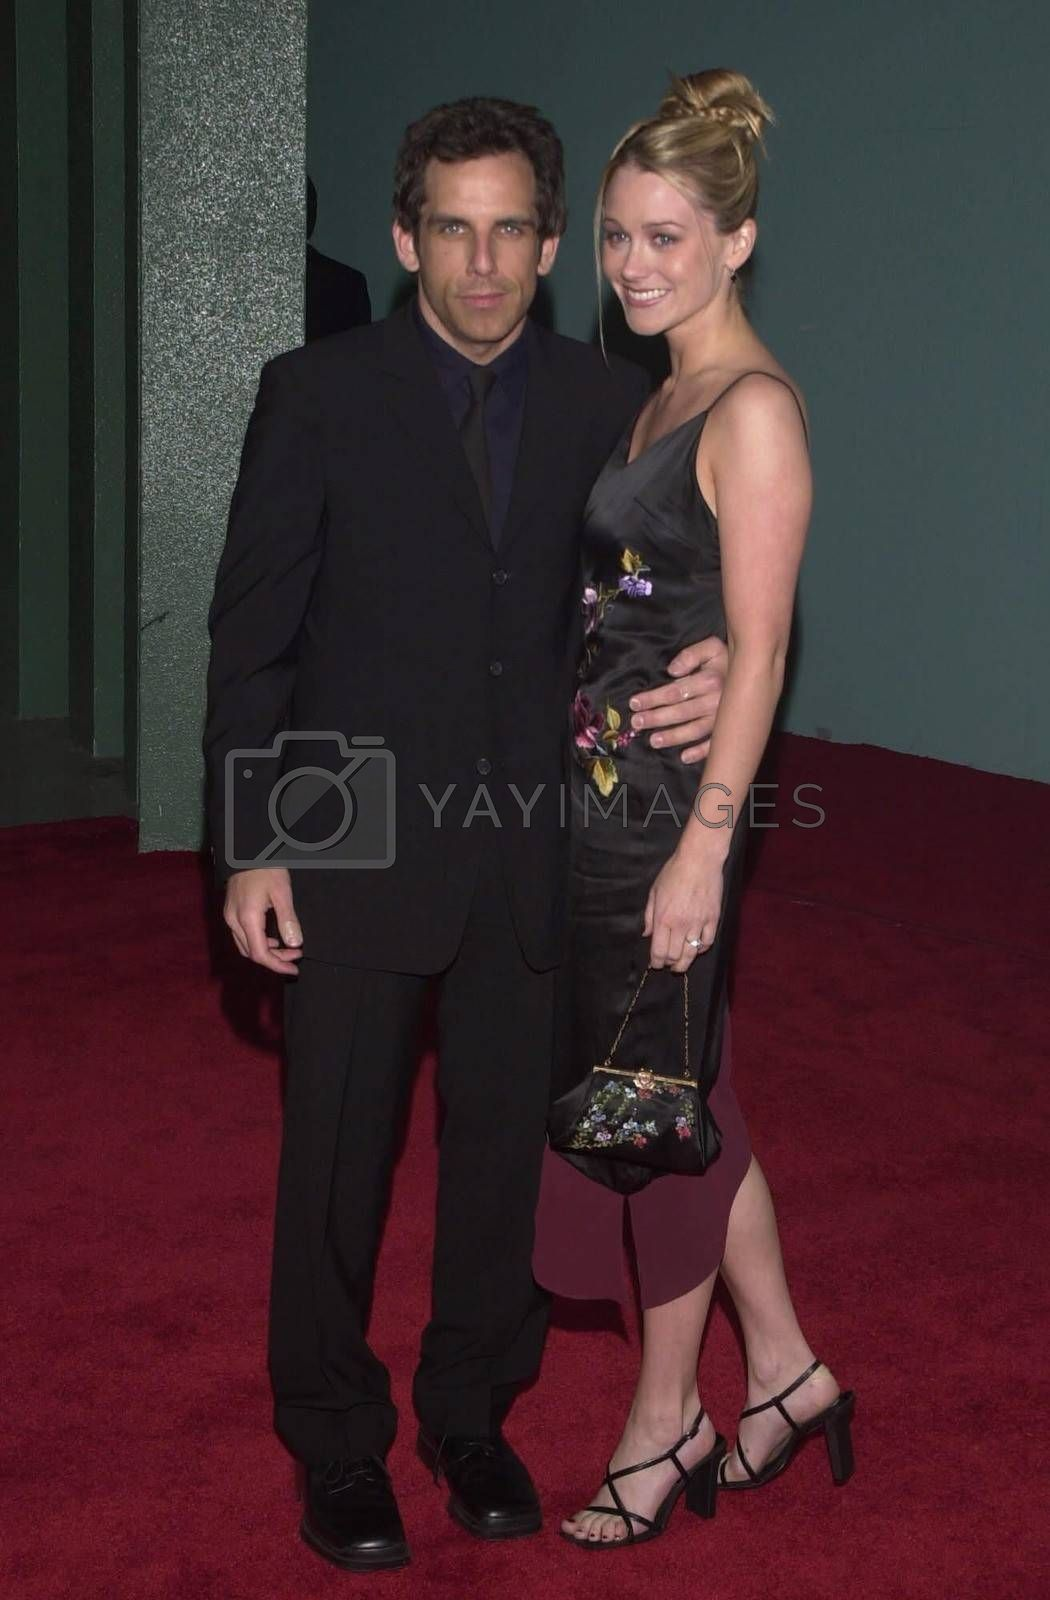 Ben Stiller and Christine Taylor at the 2nd Annual ALS Benefit at the Hollywood Palladium, 04-10-00